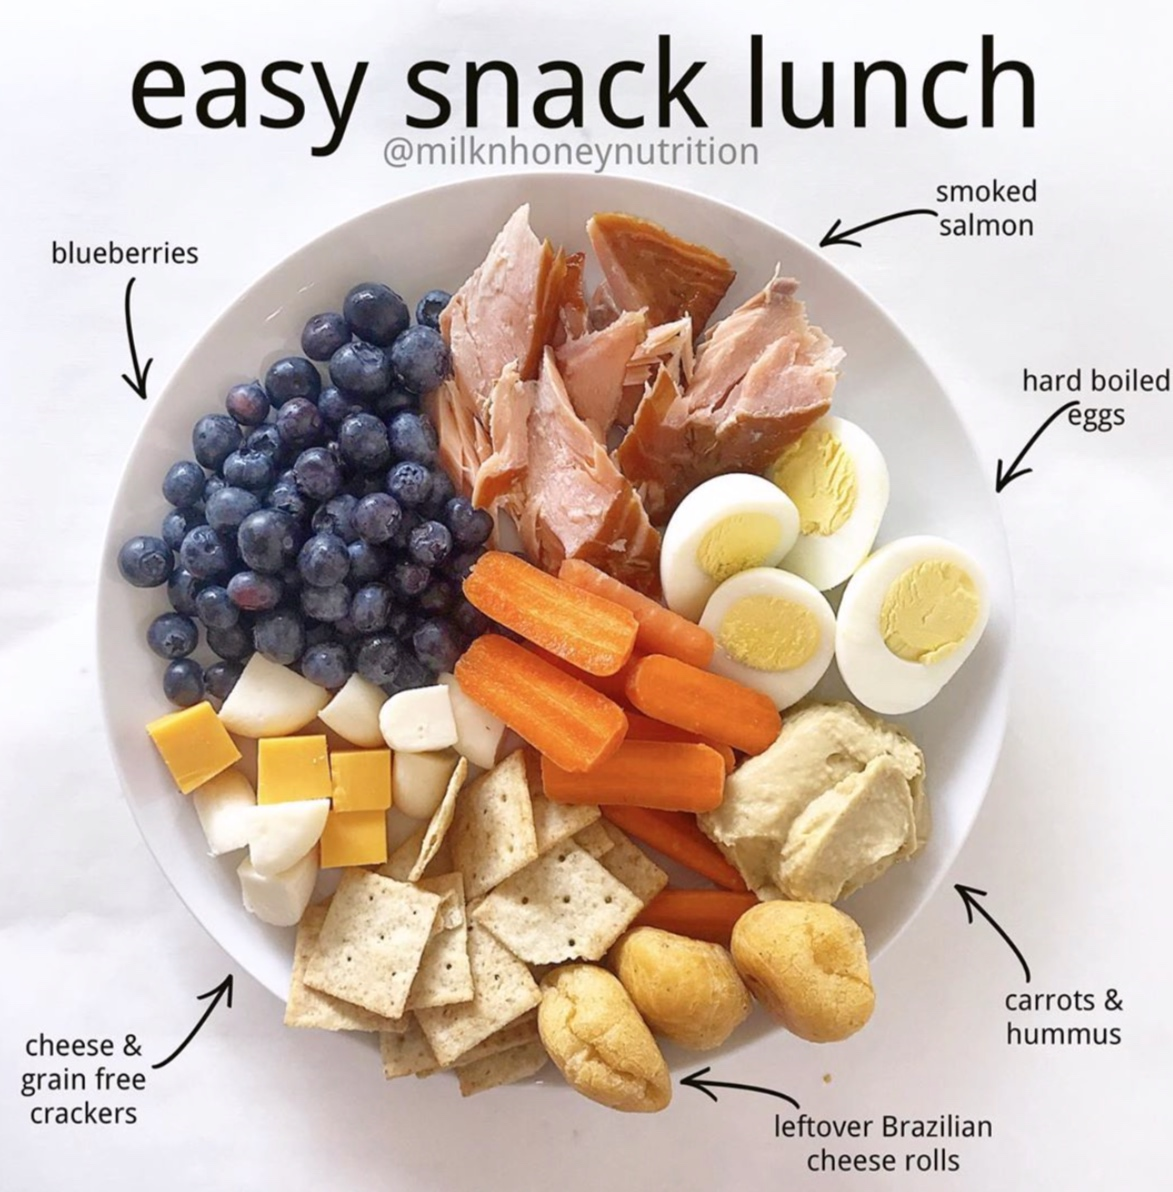 Snack lunch and snack dinner: THE 5 minute meal solution